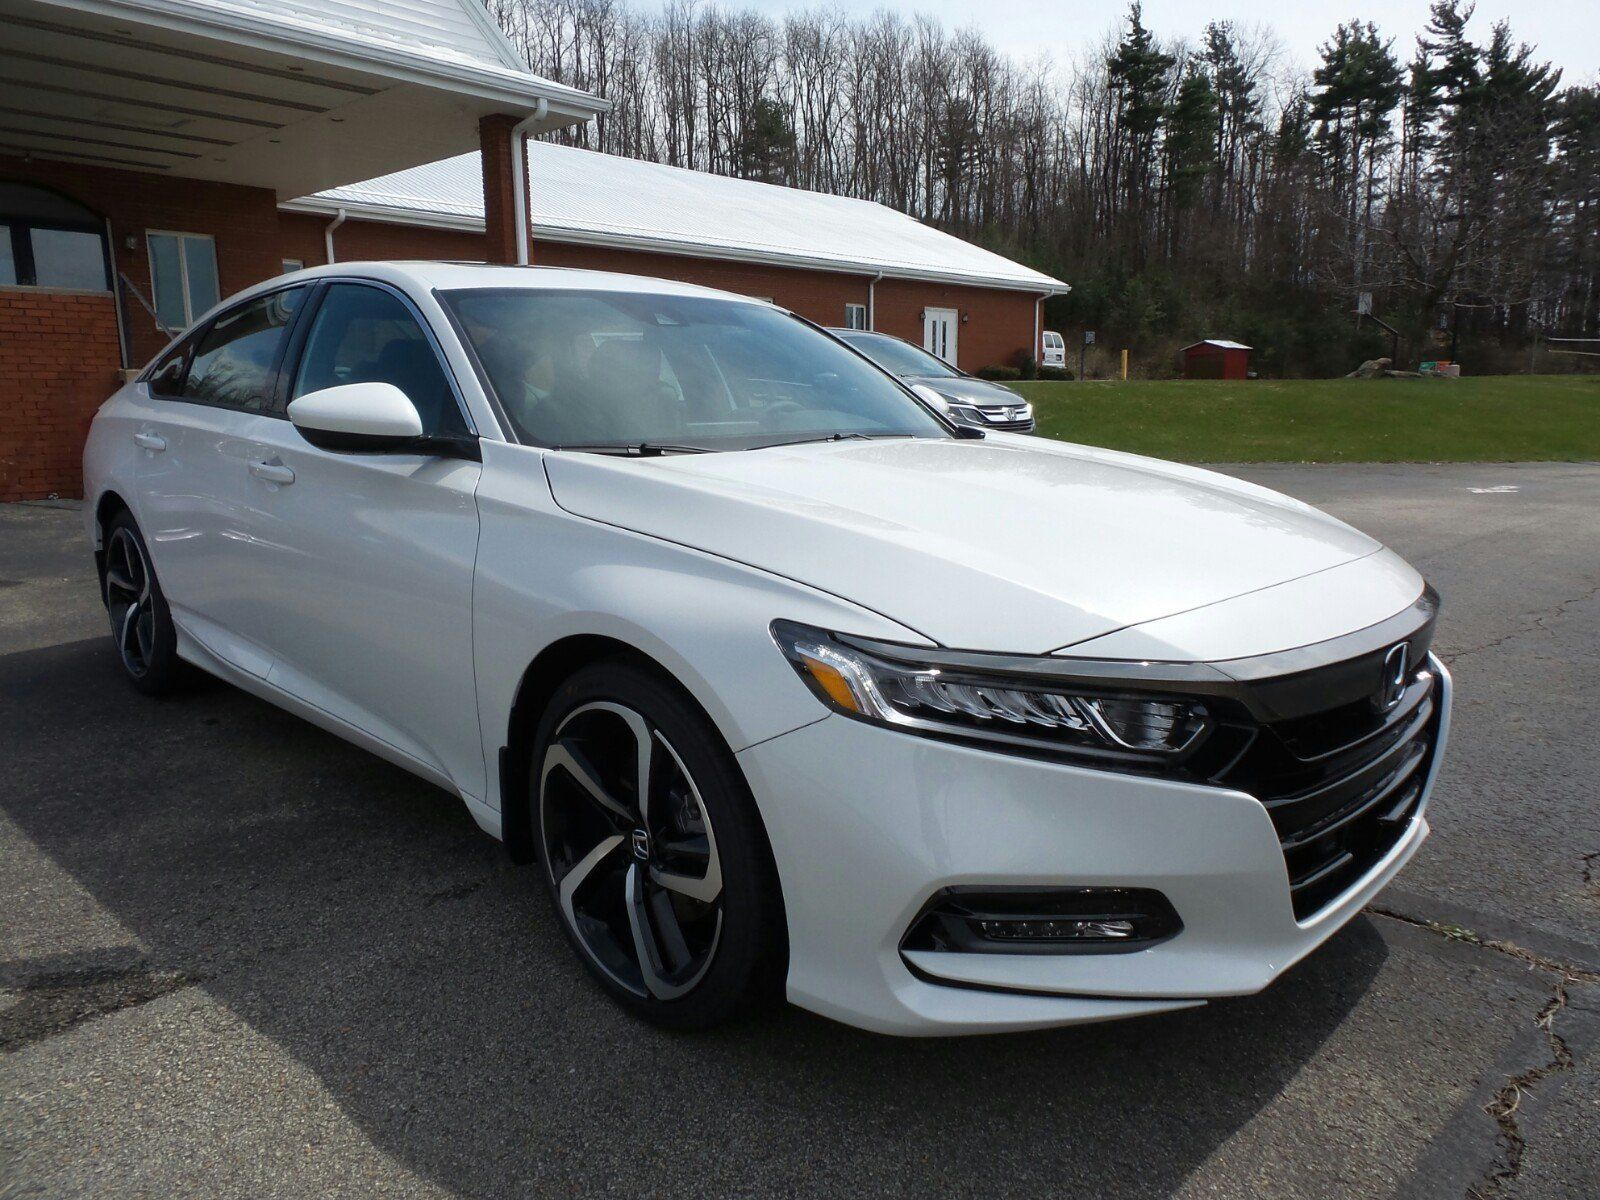 New 2018 Honda Accord Sedan Sport 2 0t 4dr Car In Indiana Pa 58276 Within 2018 Honda Accord Sport 2 0 T Fr Honda Accord Sport Honda Accord Coupe Honda Accord